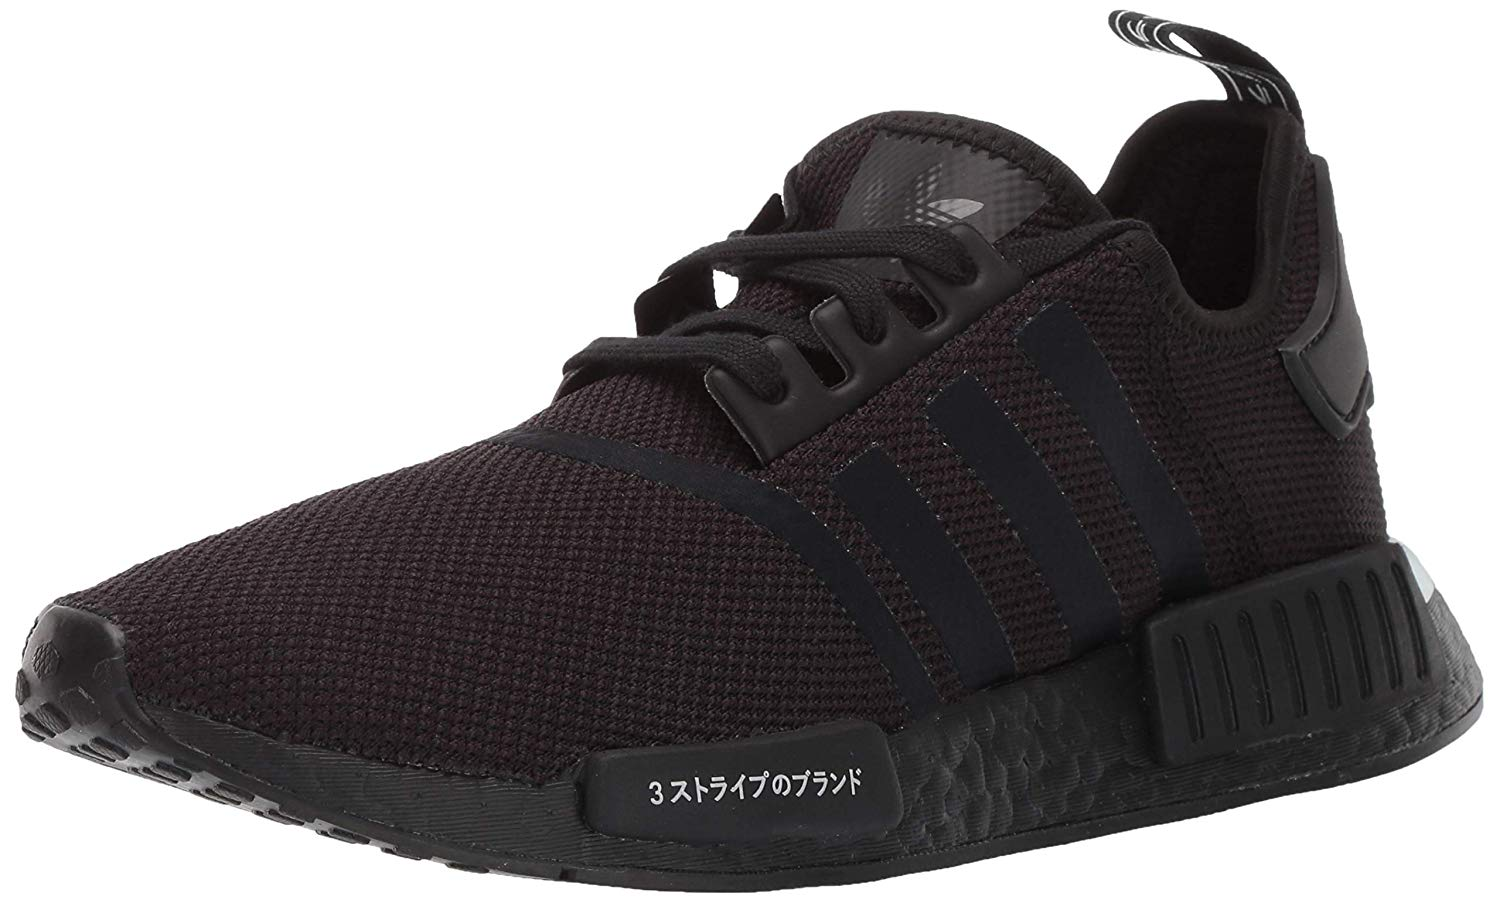 info for 25f4b 27765 Details about adidas Originals Men's NMD_r1 Running Shoe,  Black/Black/White, Size 7.5 wGUB